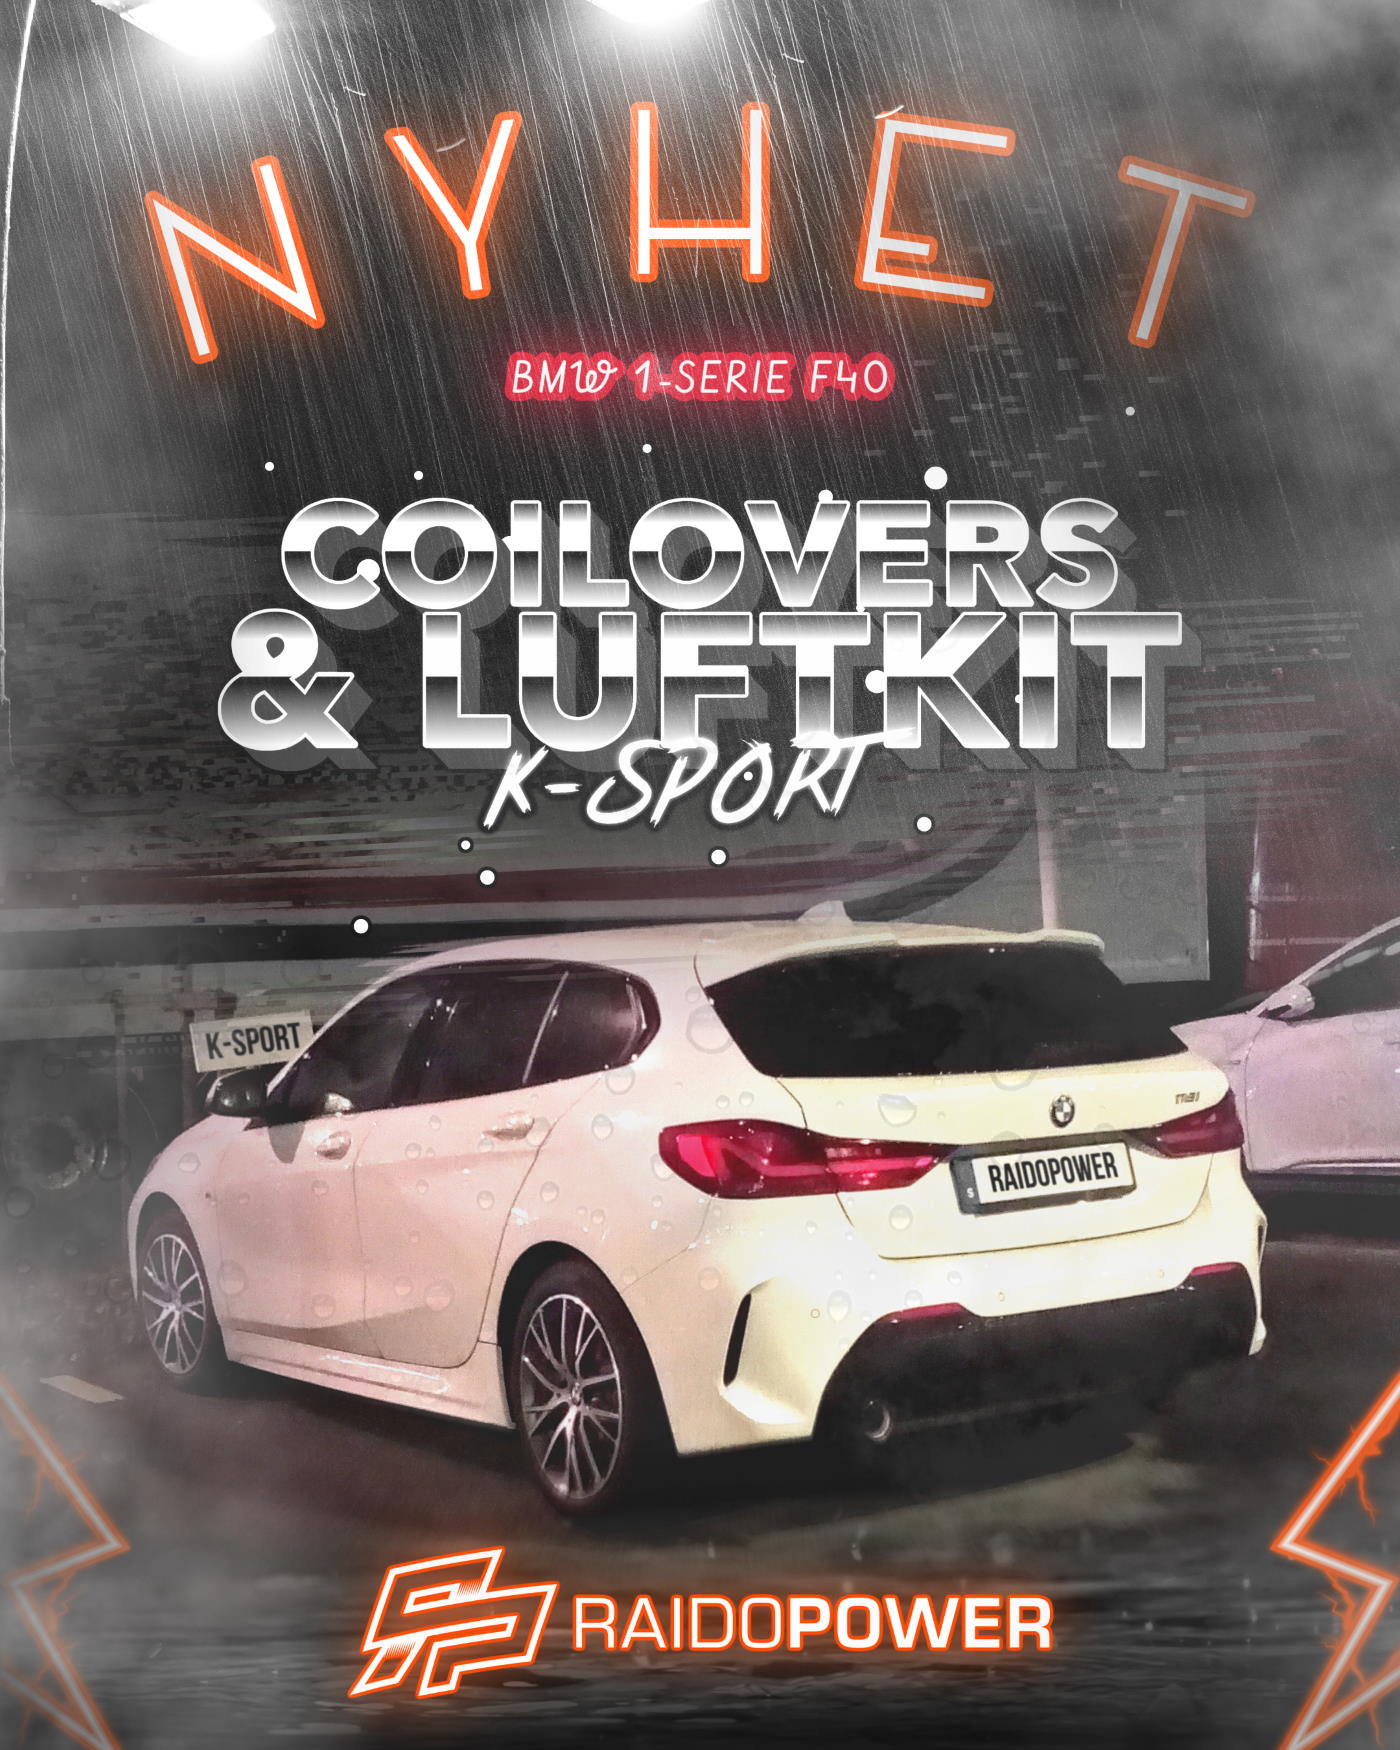 K-sport Coilovers Luftkit Nyhet BMW F40